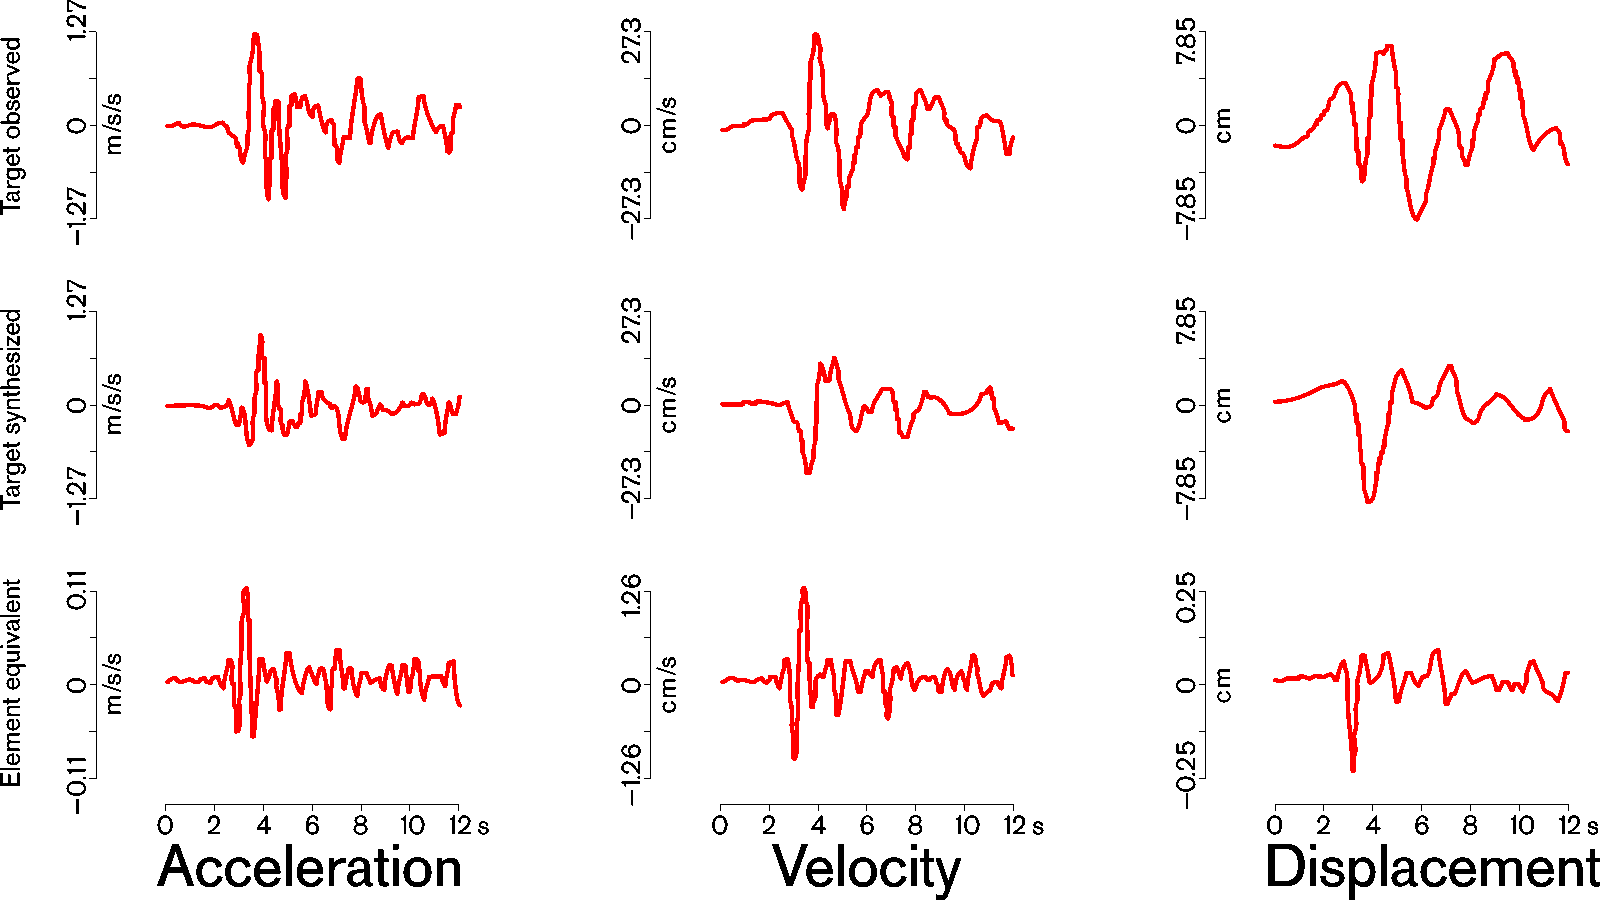 Image: Typical values for acceleration, velocity and displacement of strong EQs